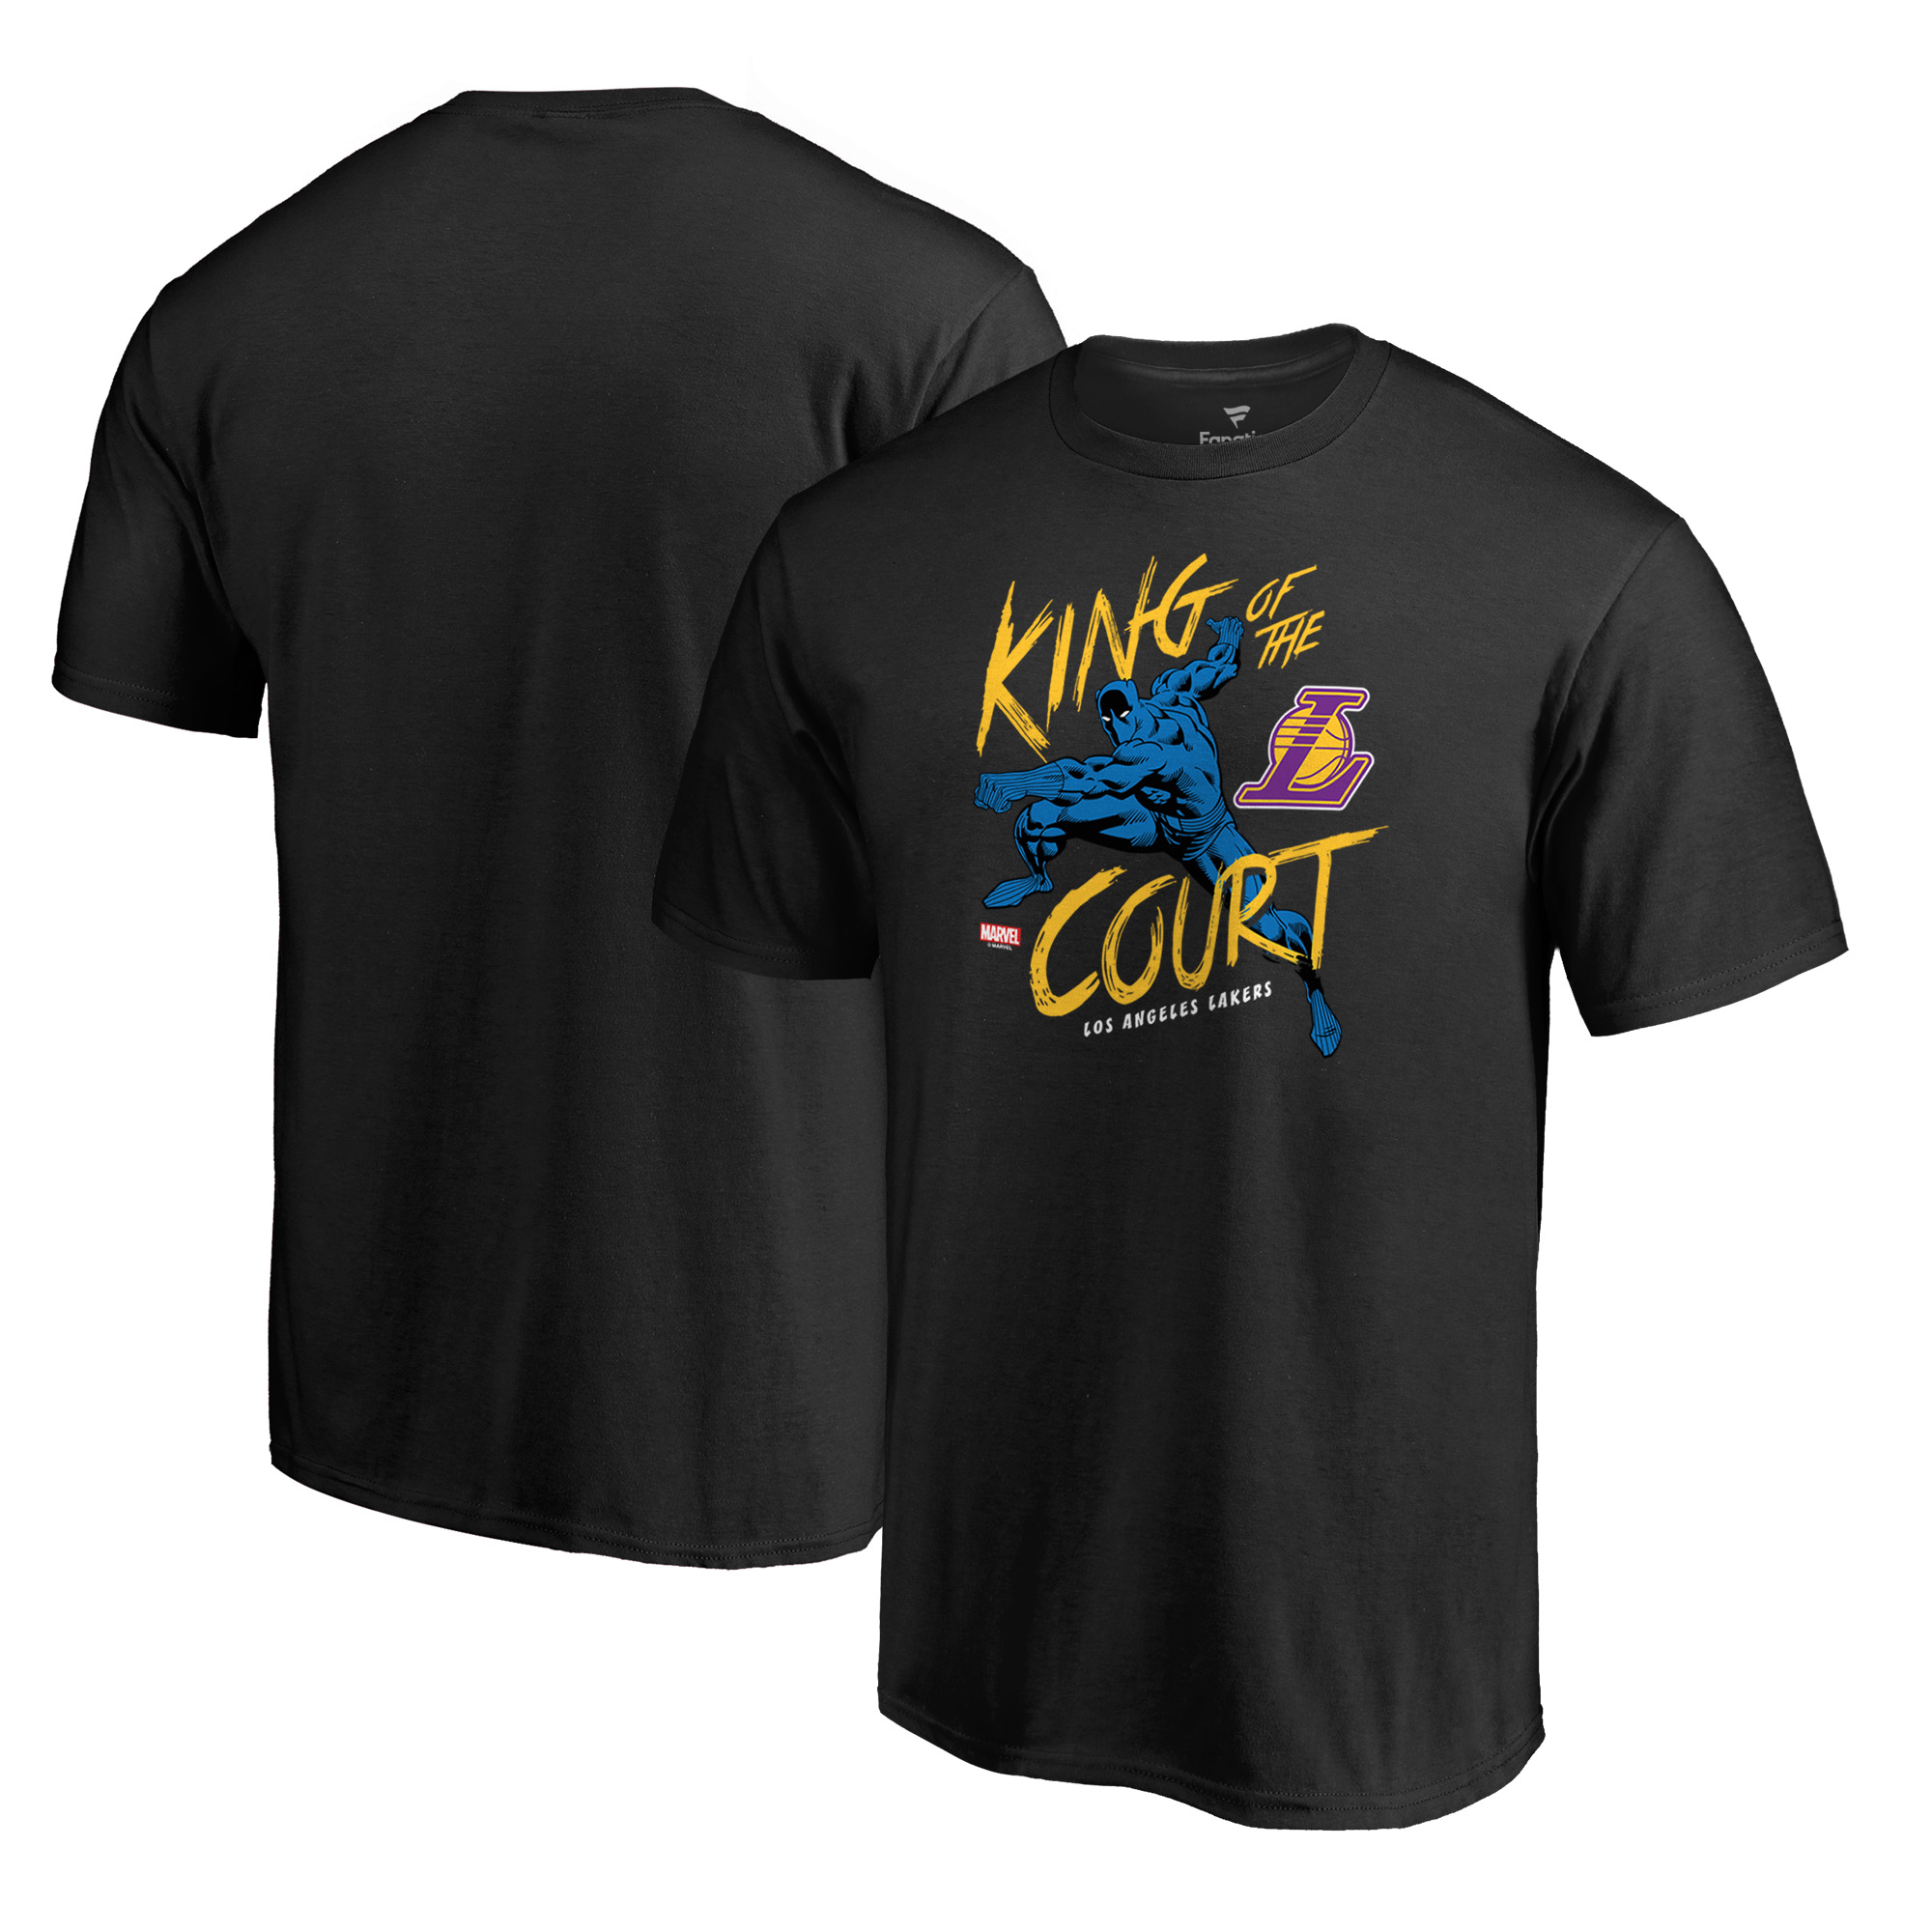 Los Angeles Lakers Fanatics Branded Marvel Black Panther King of the Court T-Shirt - Black